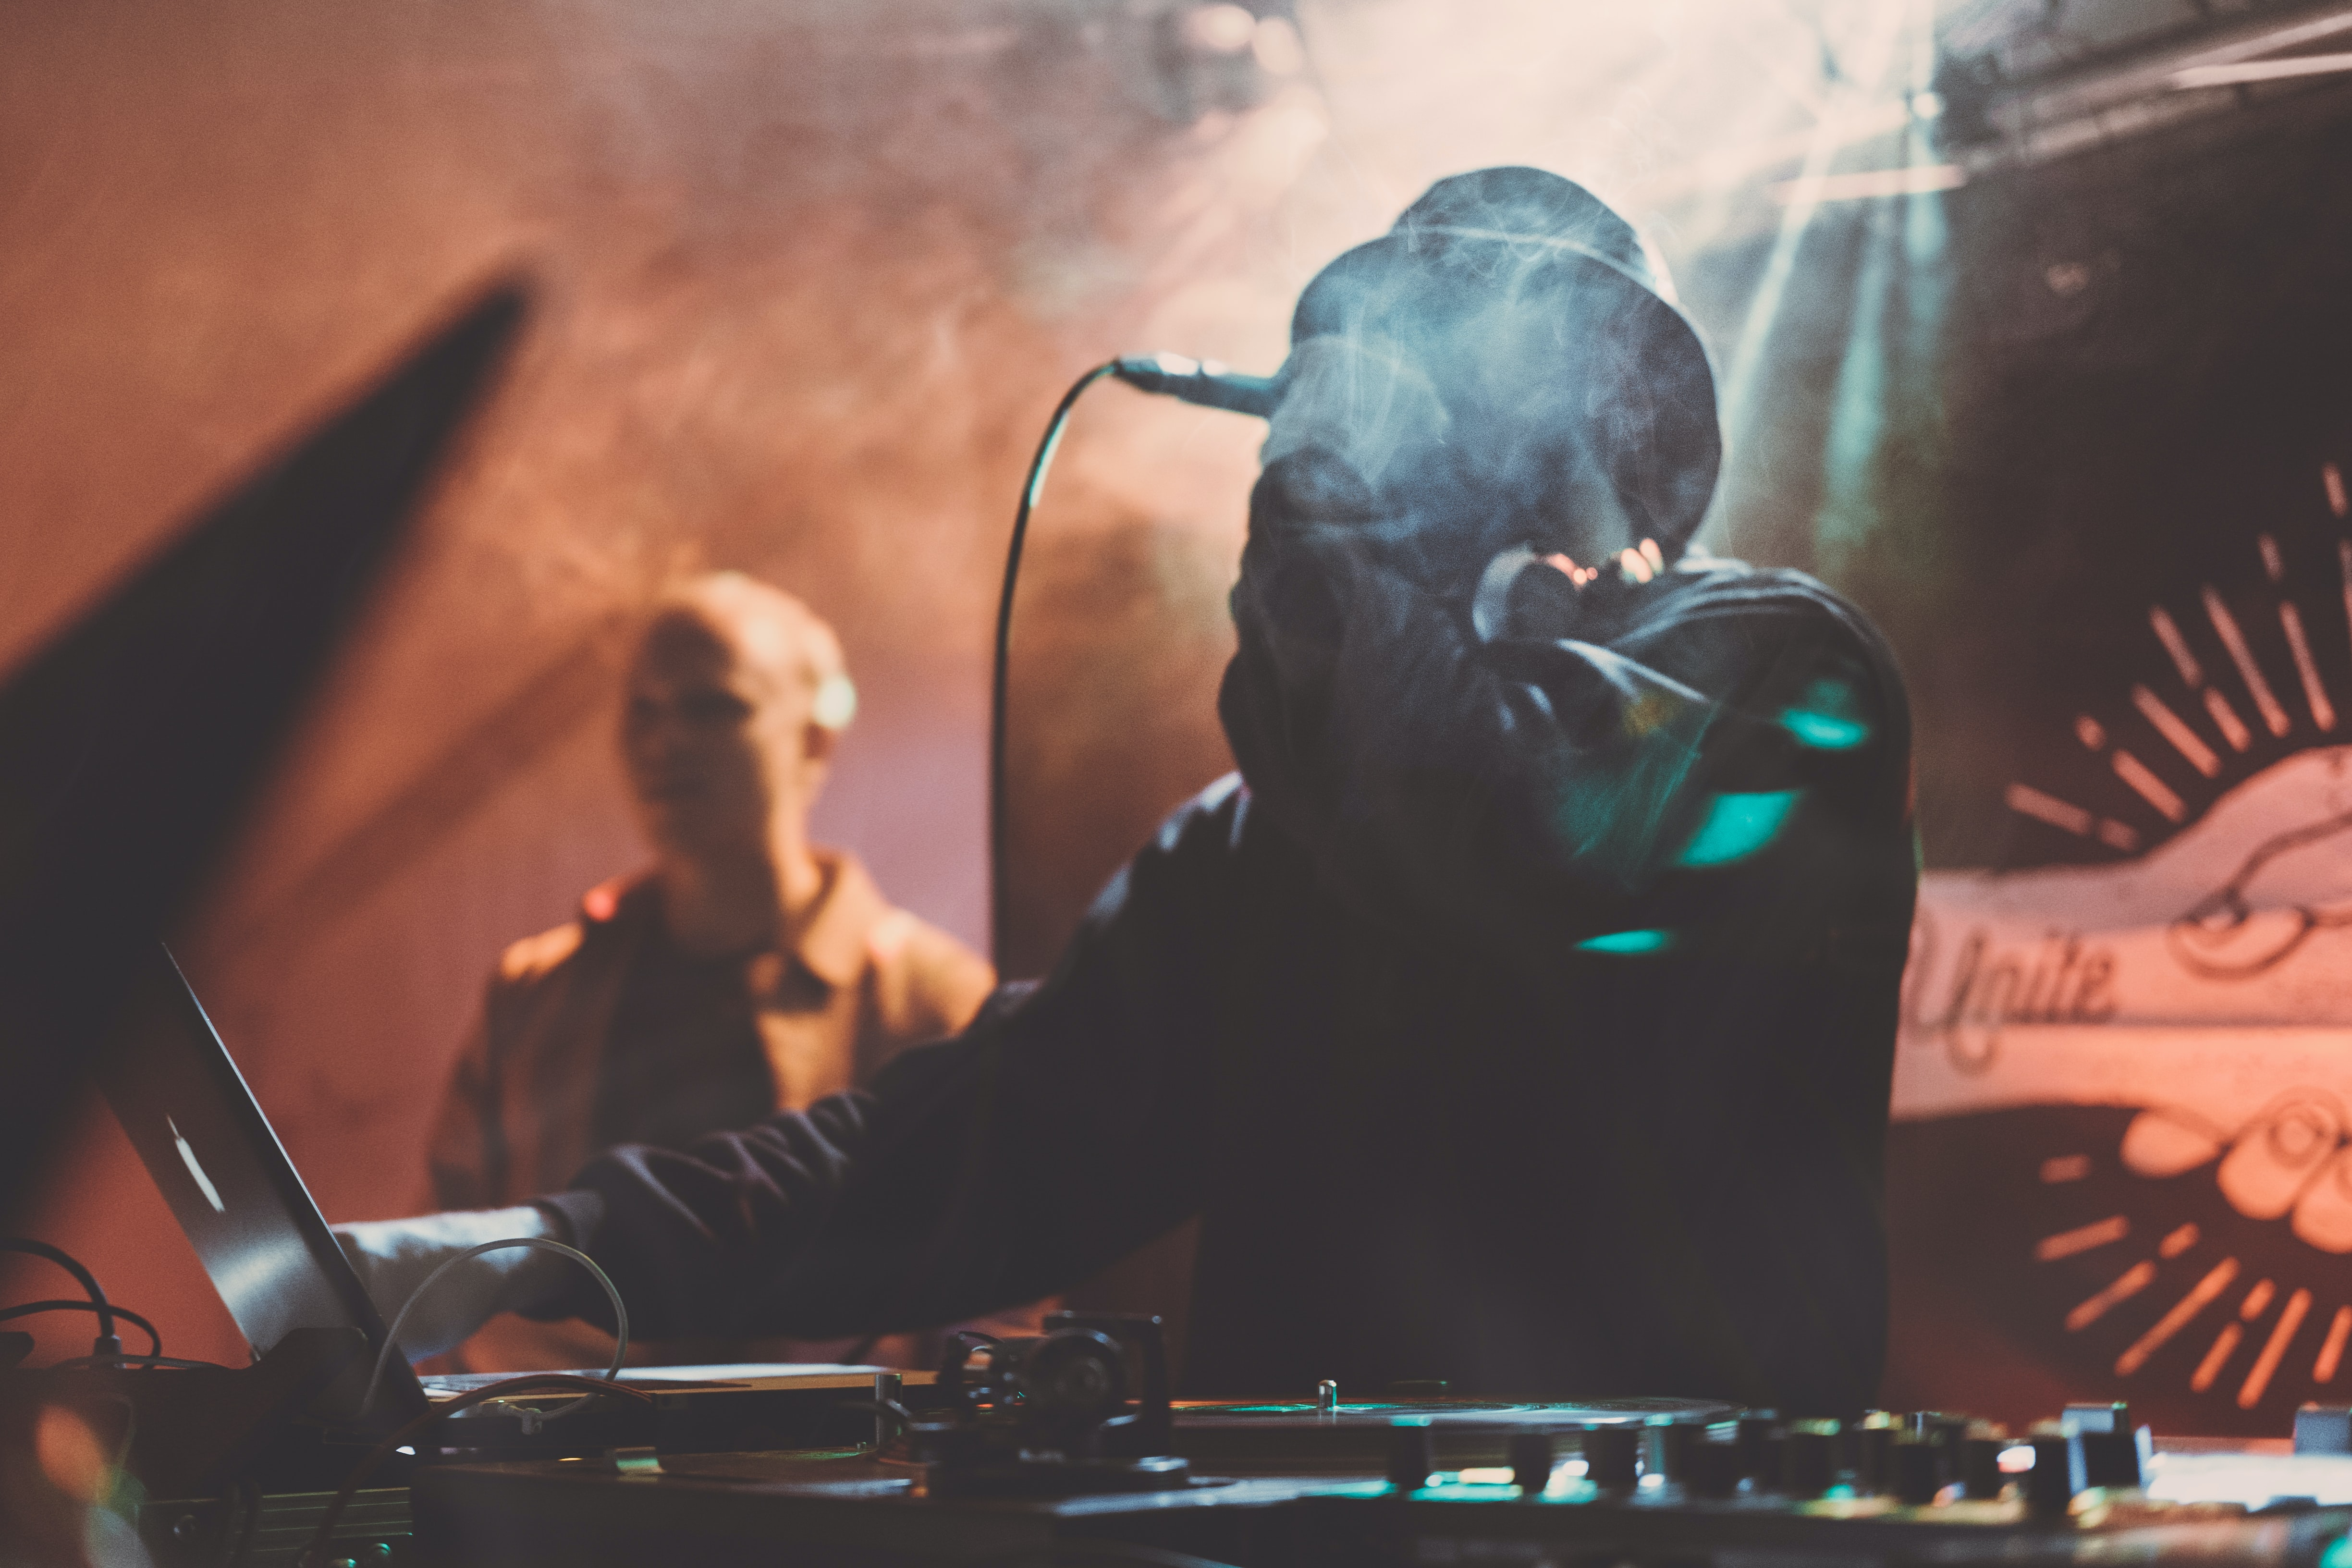 man holding dynamics microphone in front of DJ turn table